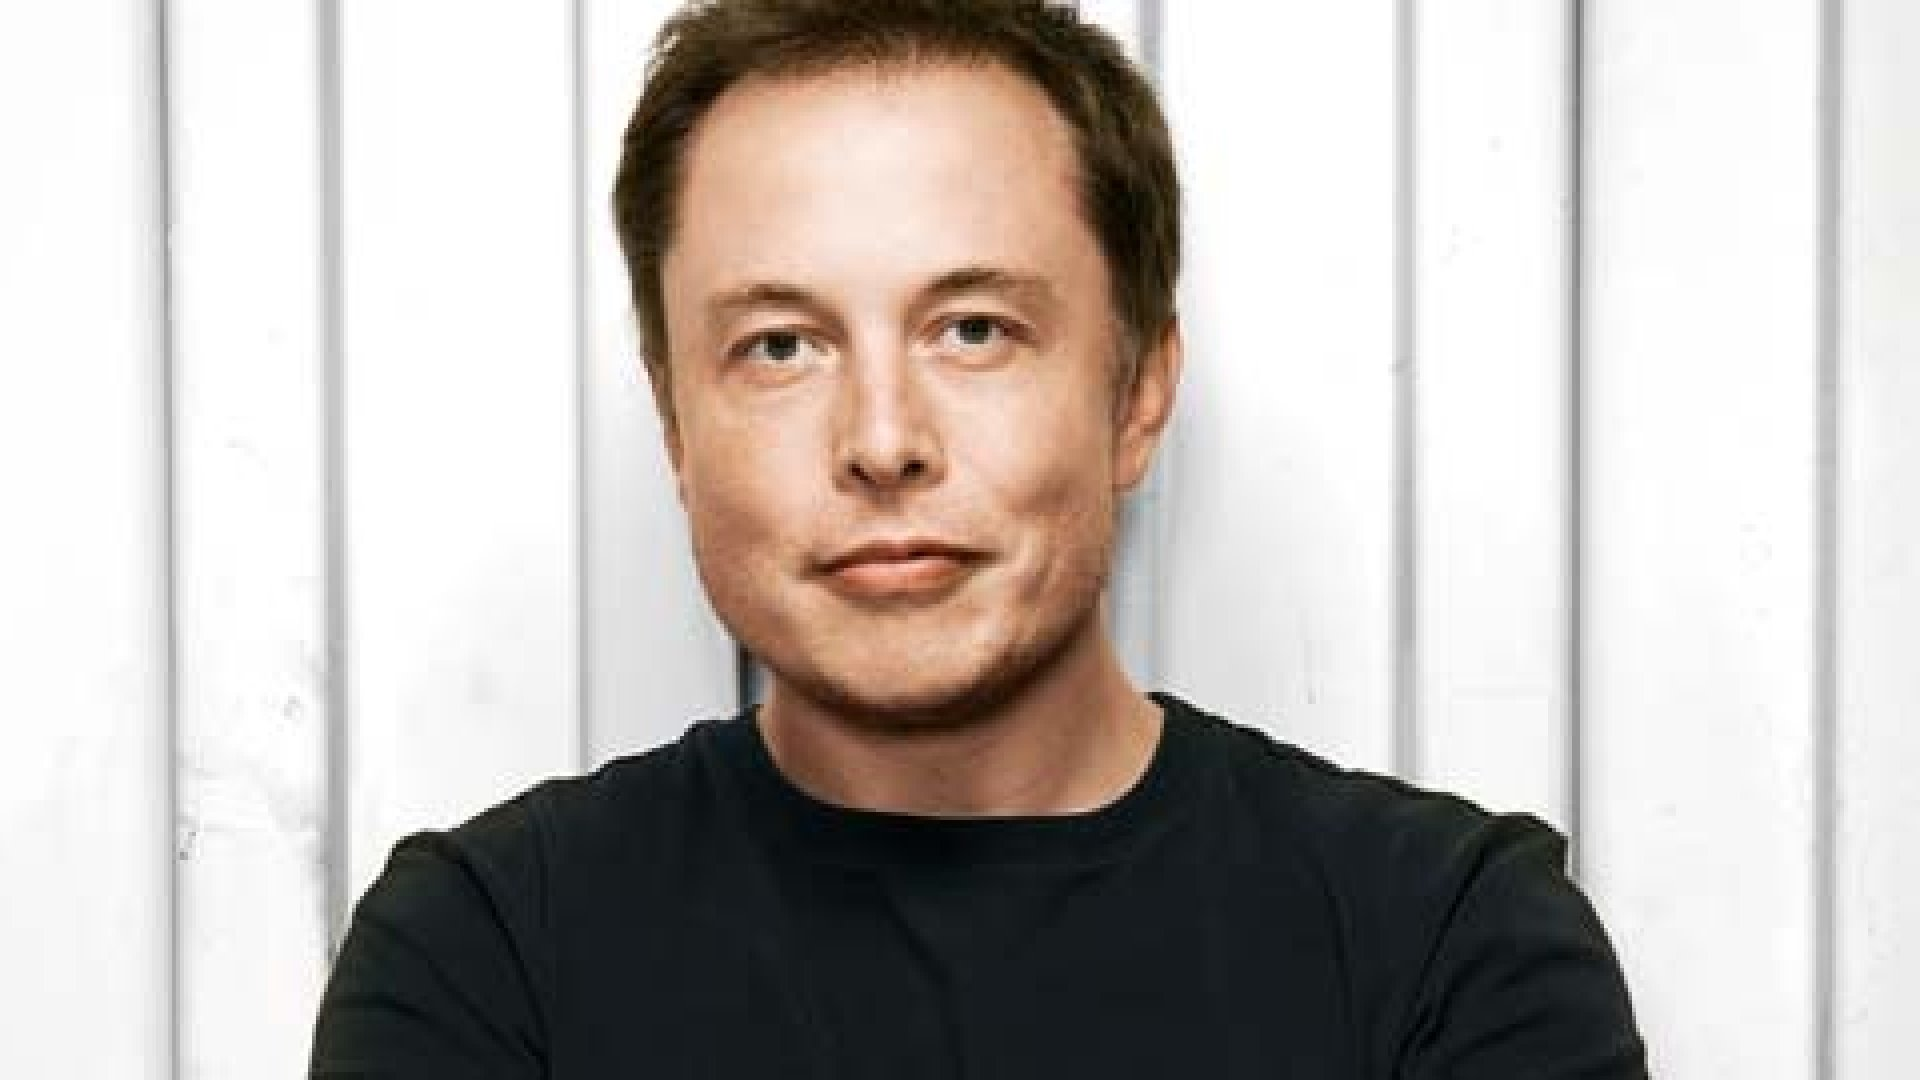 <strong>Space Is the Place</strong> Elon Musk aims to take up residence on Mars by 2030.